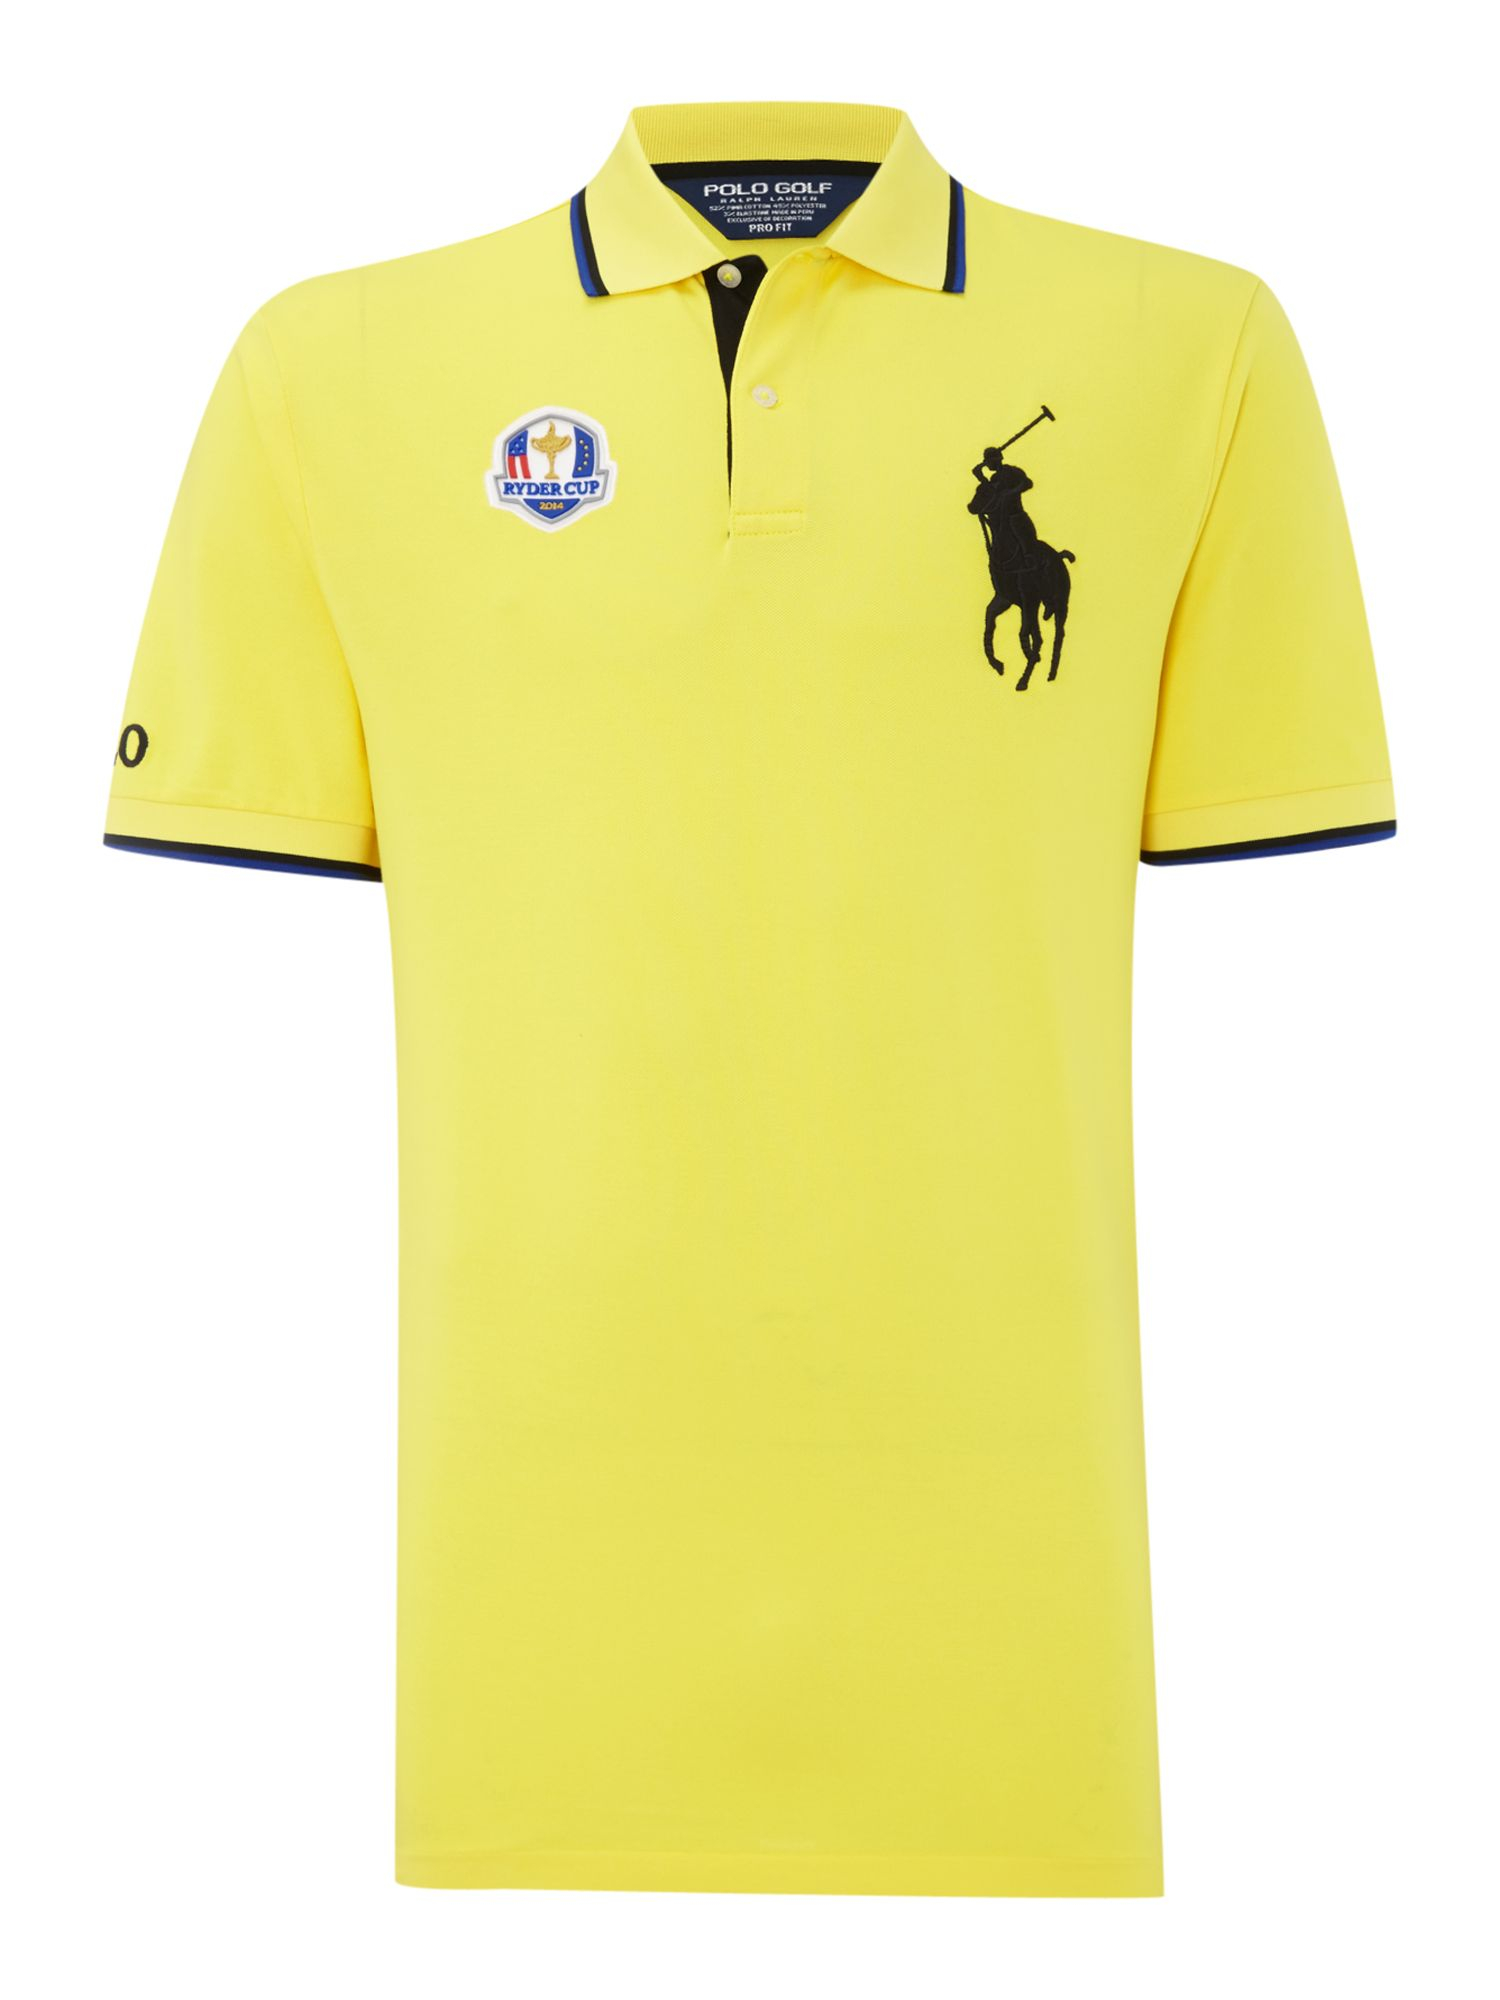 Ralph lauren golf polo golf ryder cup polo shirt in yellow for Yellow golf polo shirts